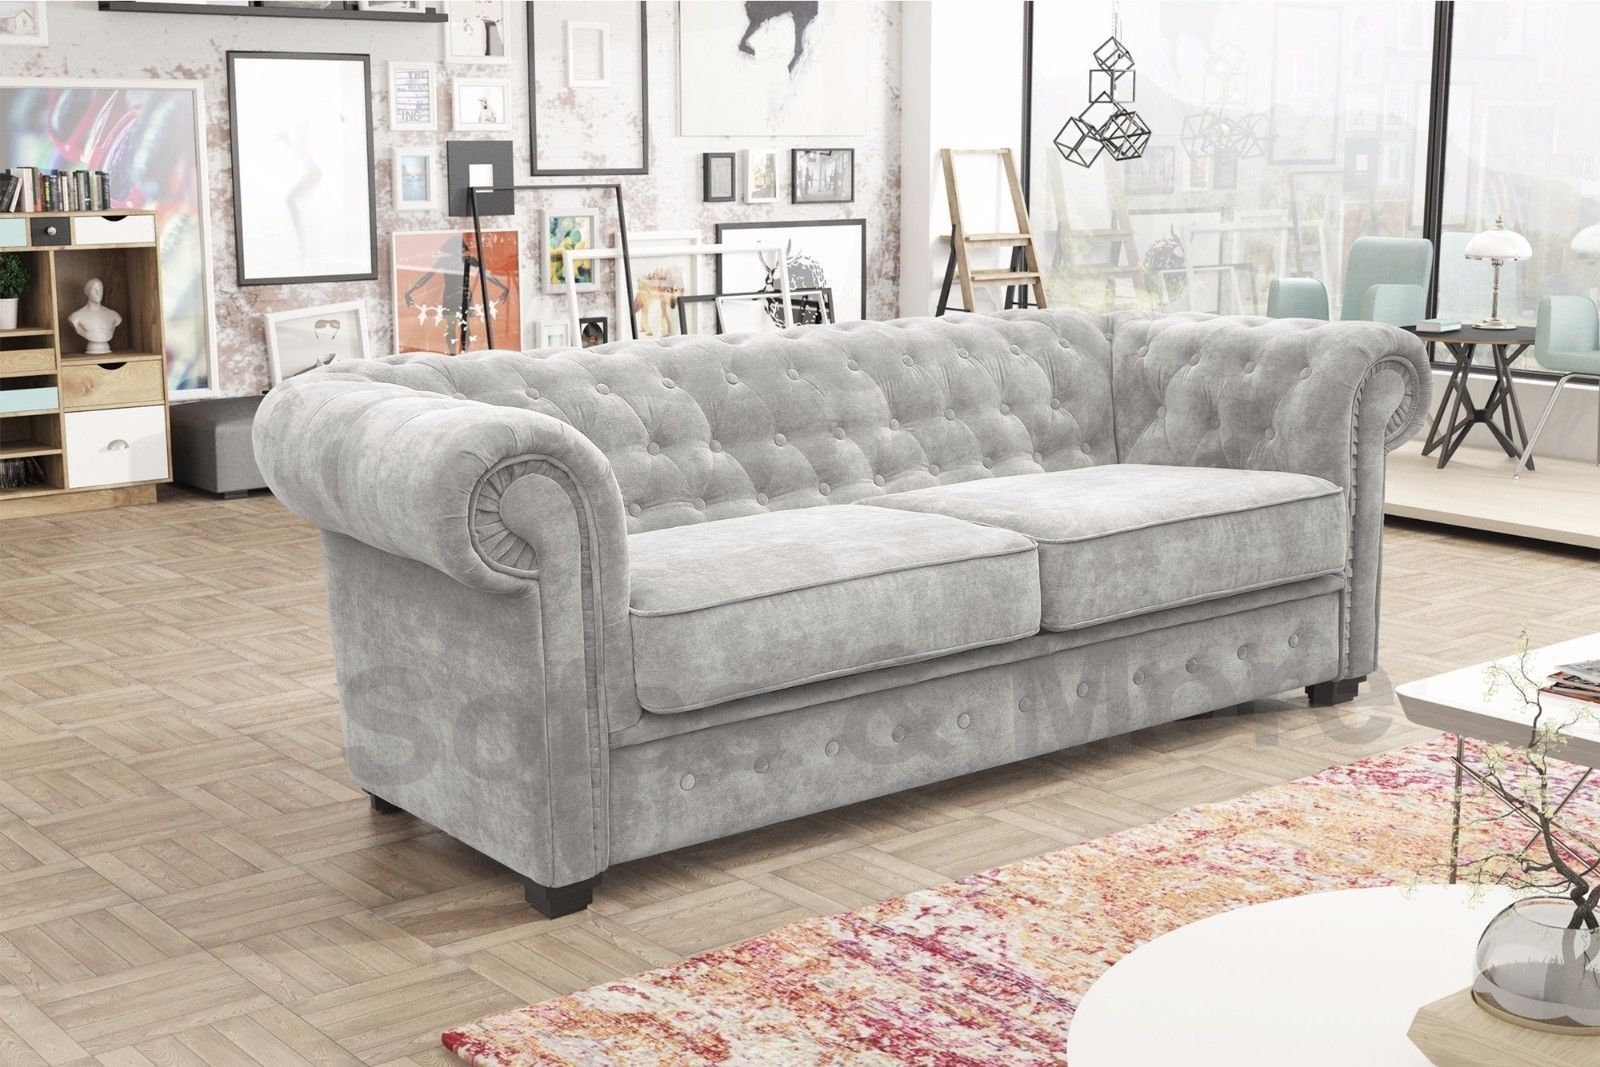 New Venus Chesterfield Style 2 Seater Sofa Bed Armchair Fabric Grey